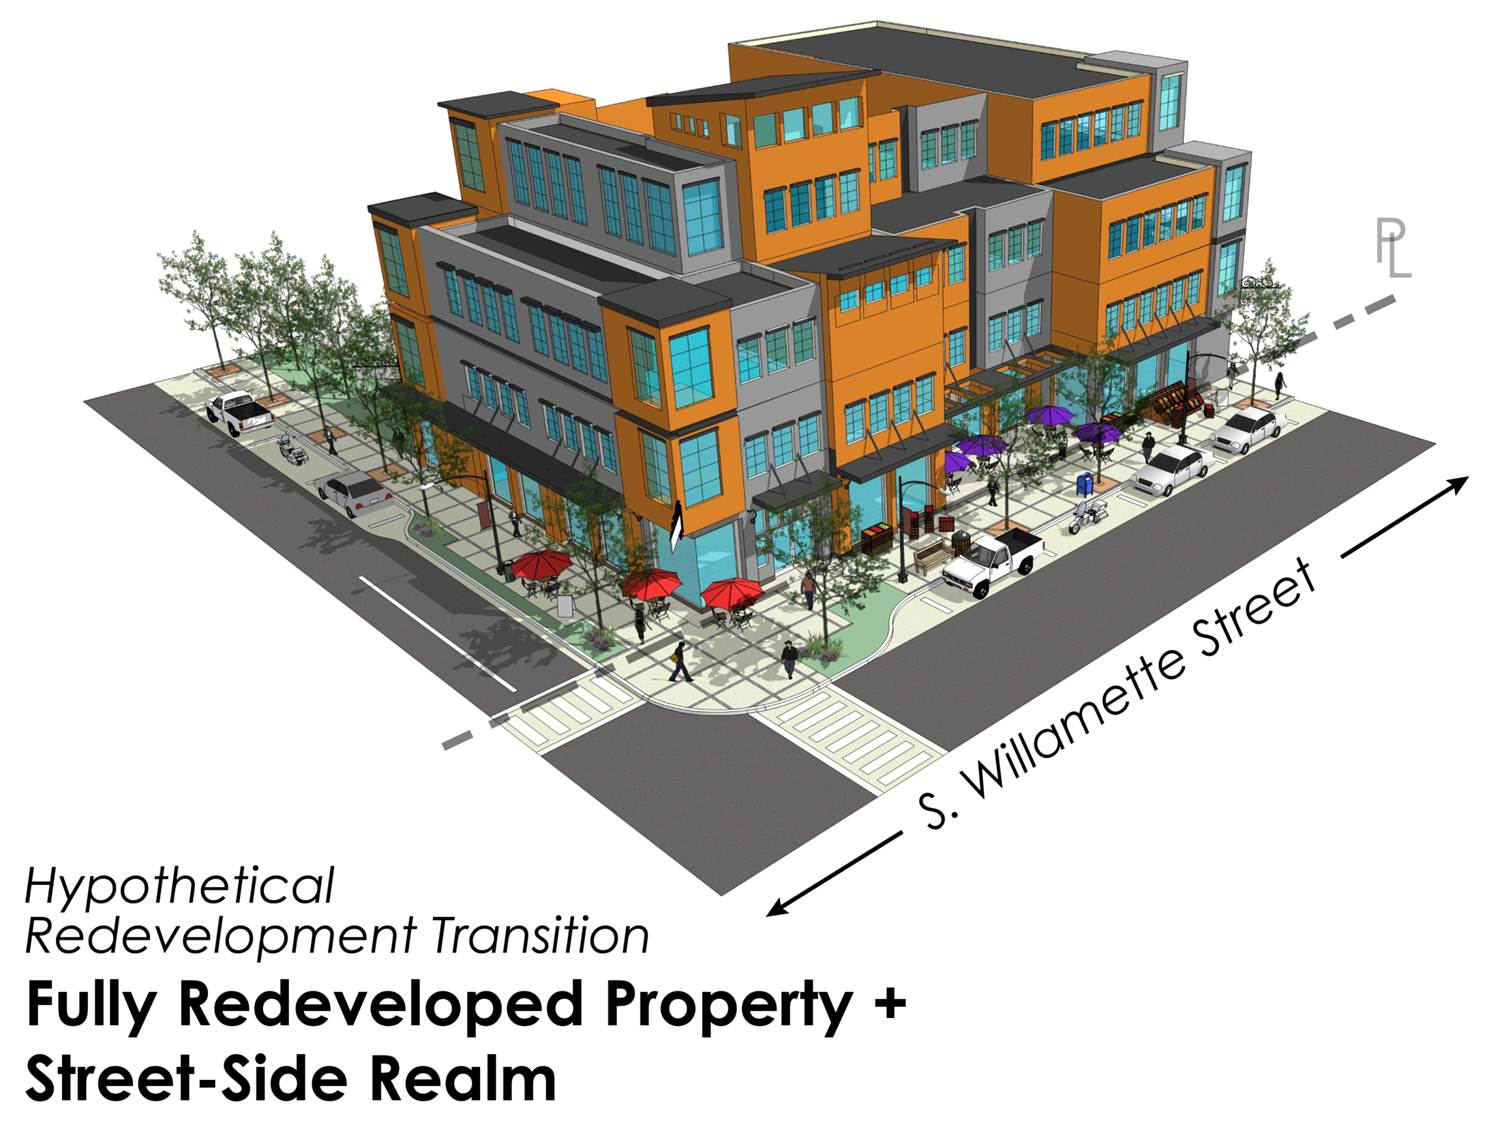 Long Term Redevelopment